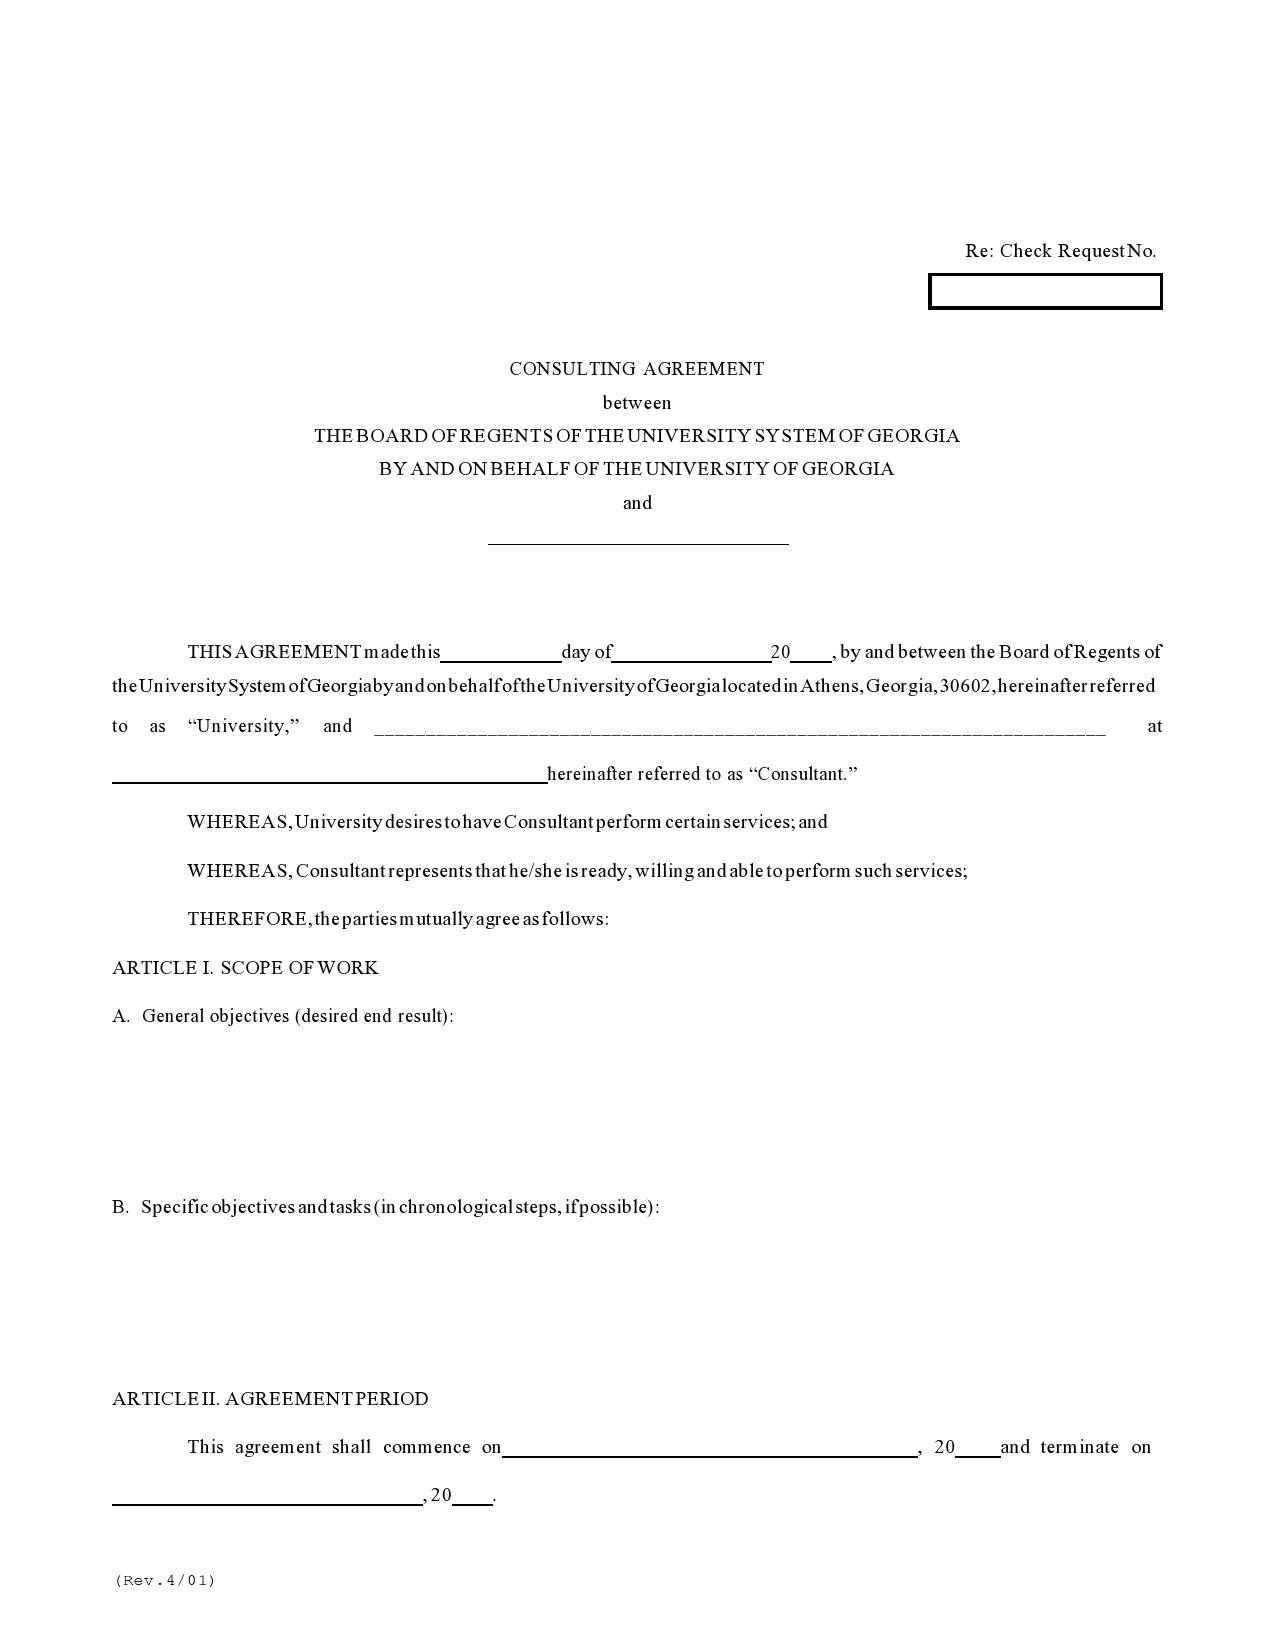 Free consulting contract template 15